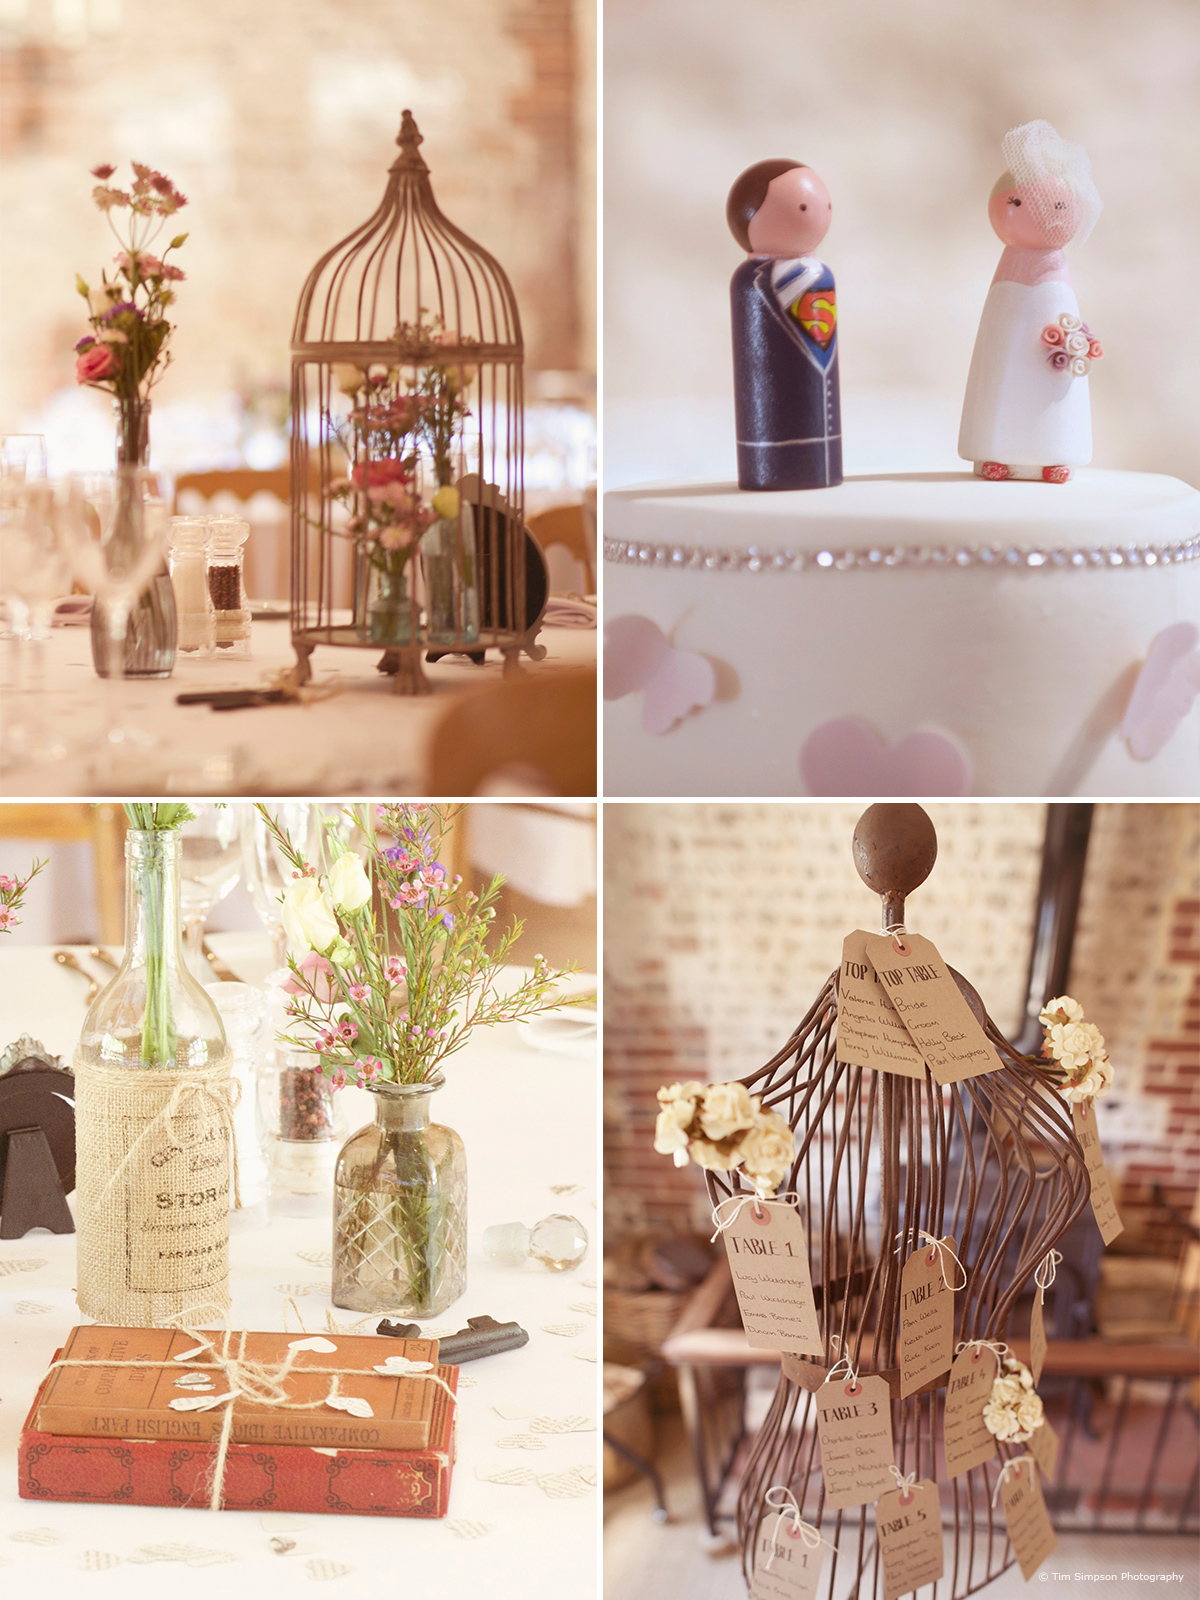 Beautiful wedding decor at Upwaltham Barns - © Tim Simpson Photography